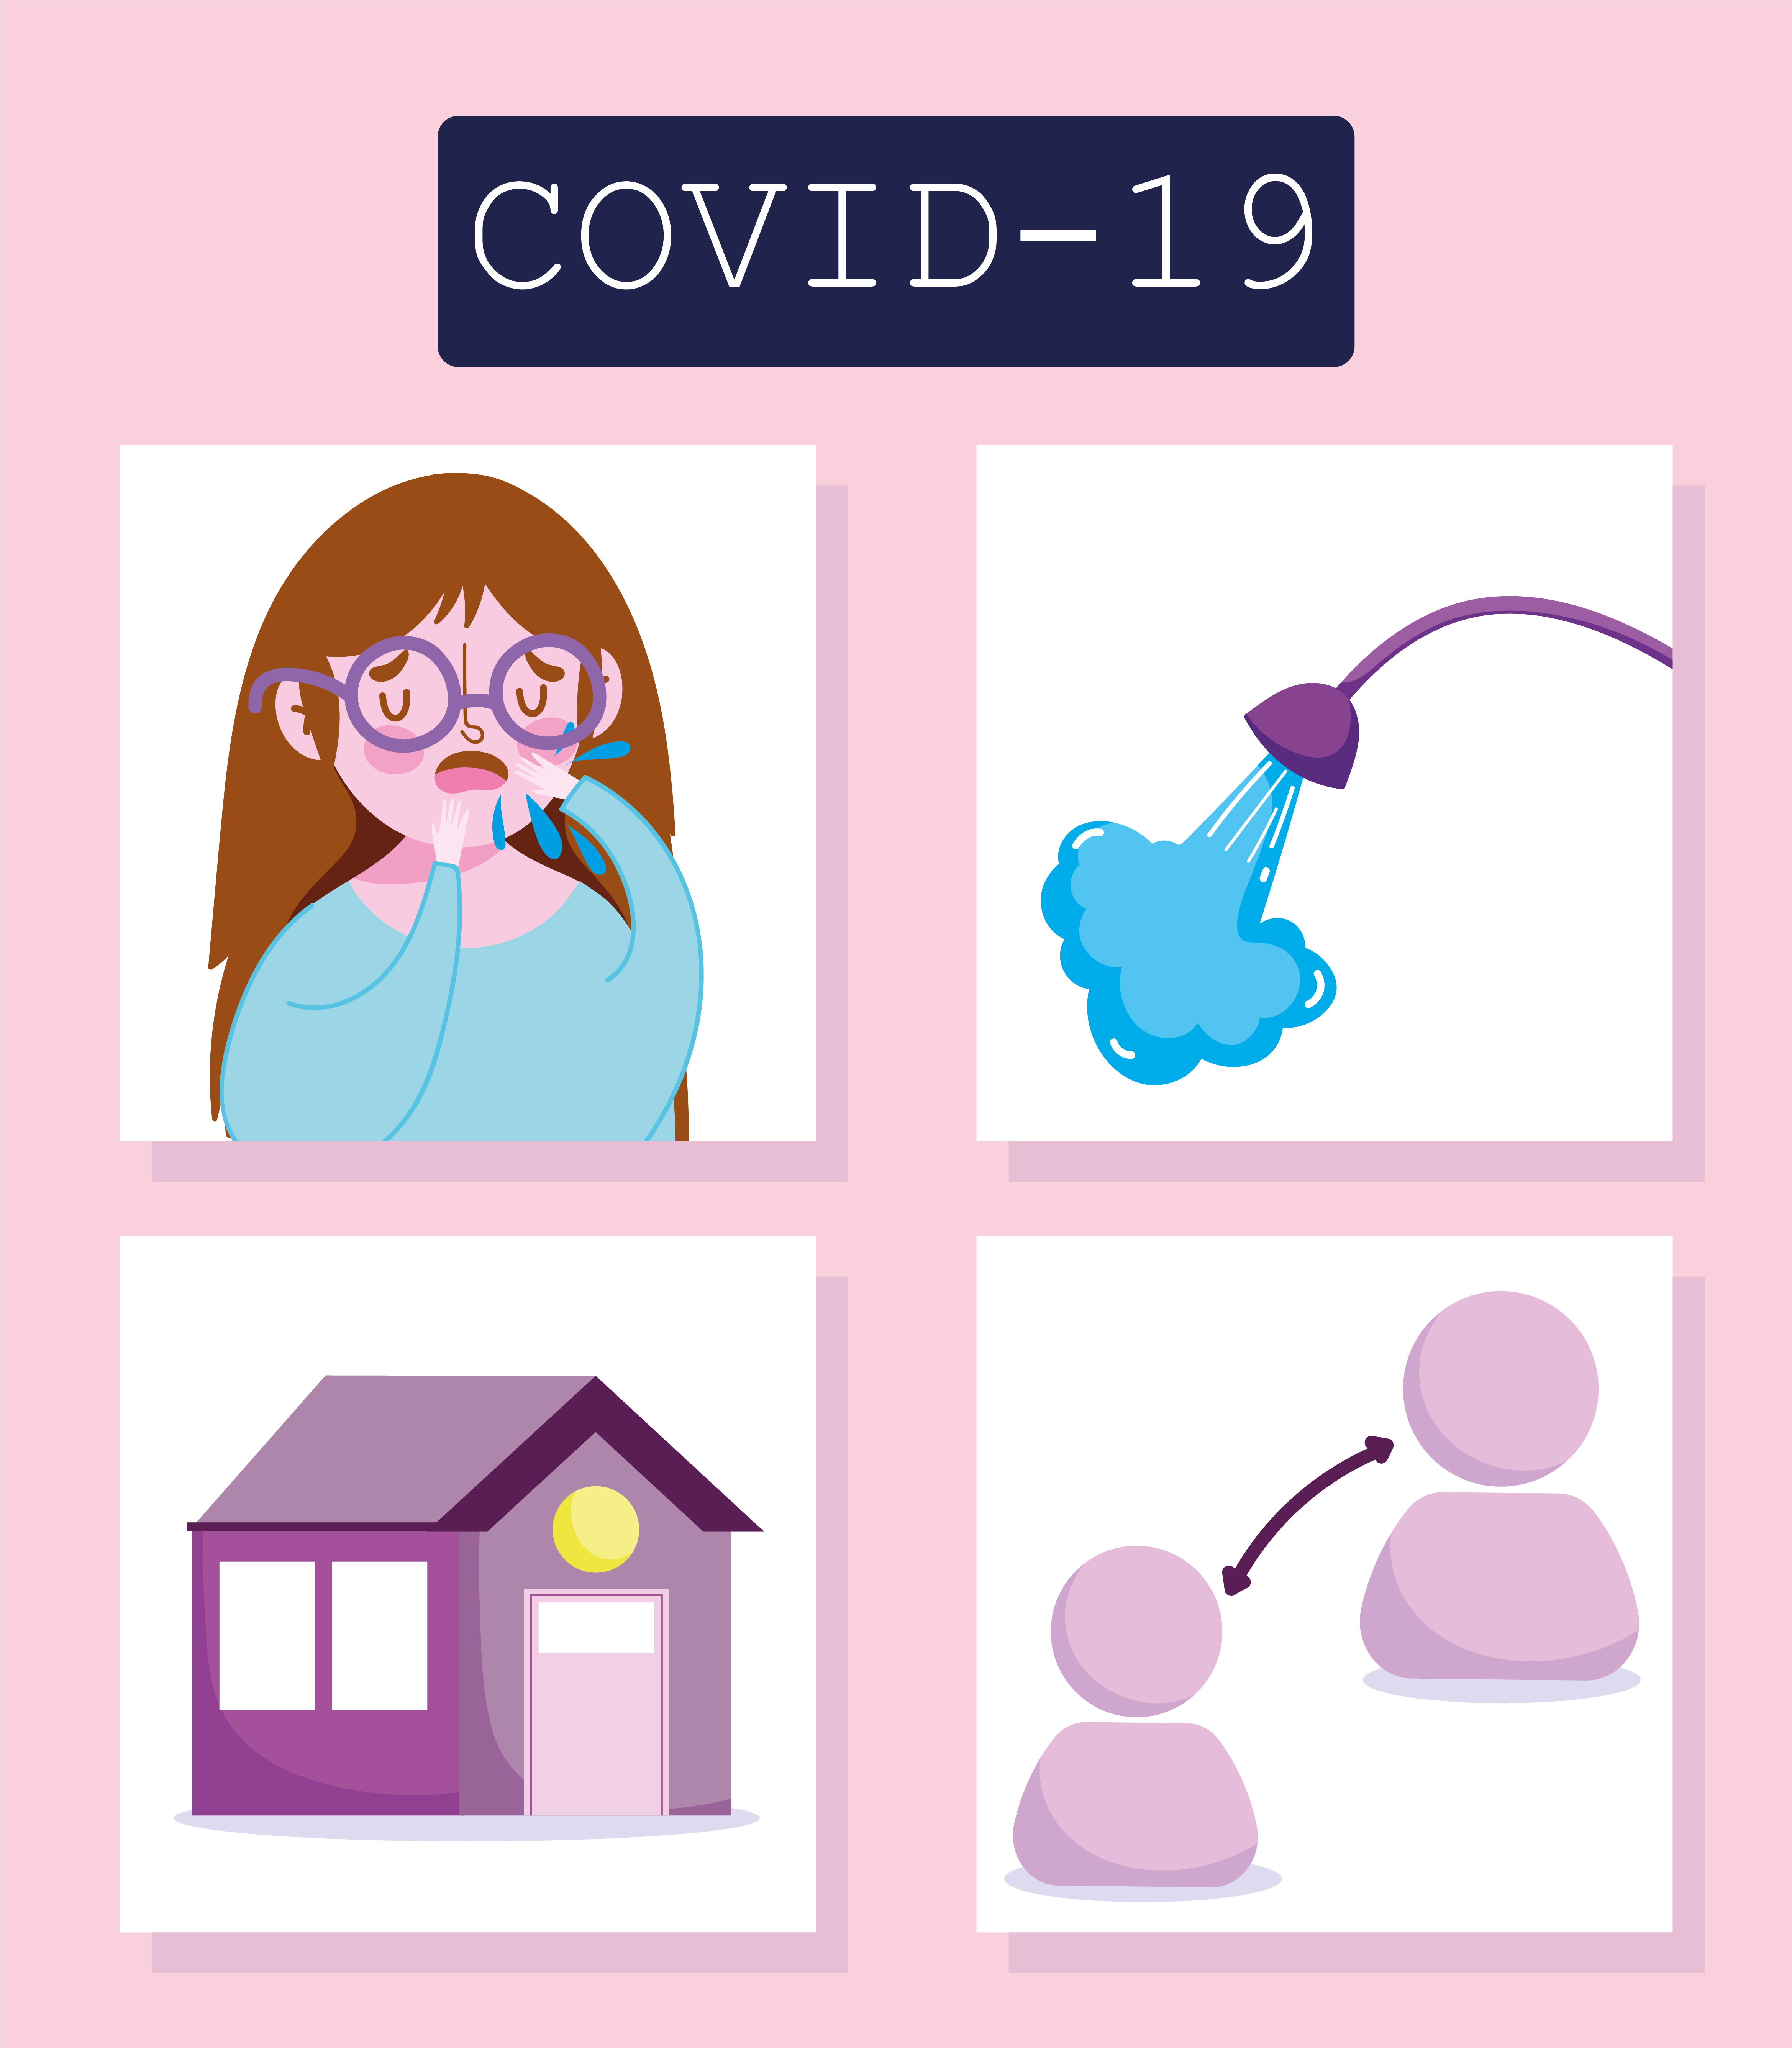 Coronavirus infographic with girl and prevention icon set